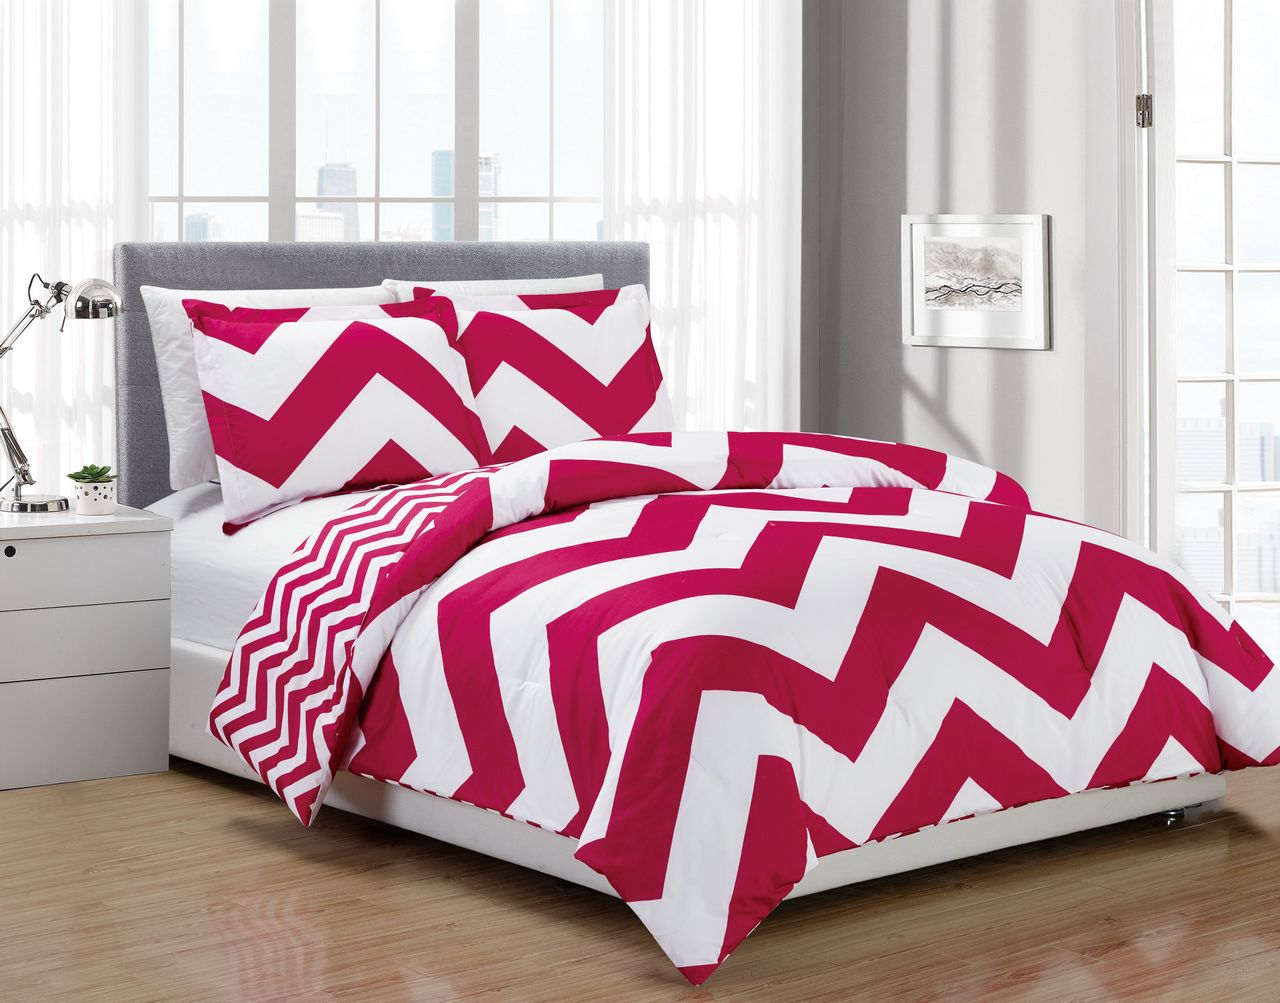 3 Piece Chevron Pink White Reversible Down Alternative